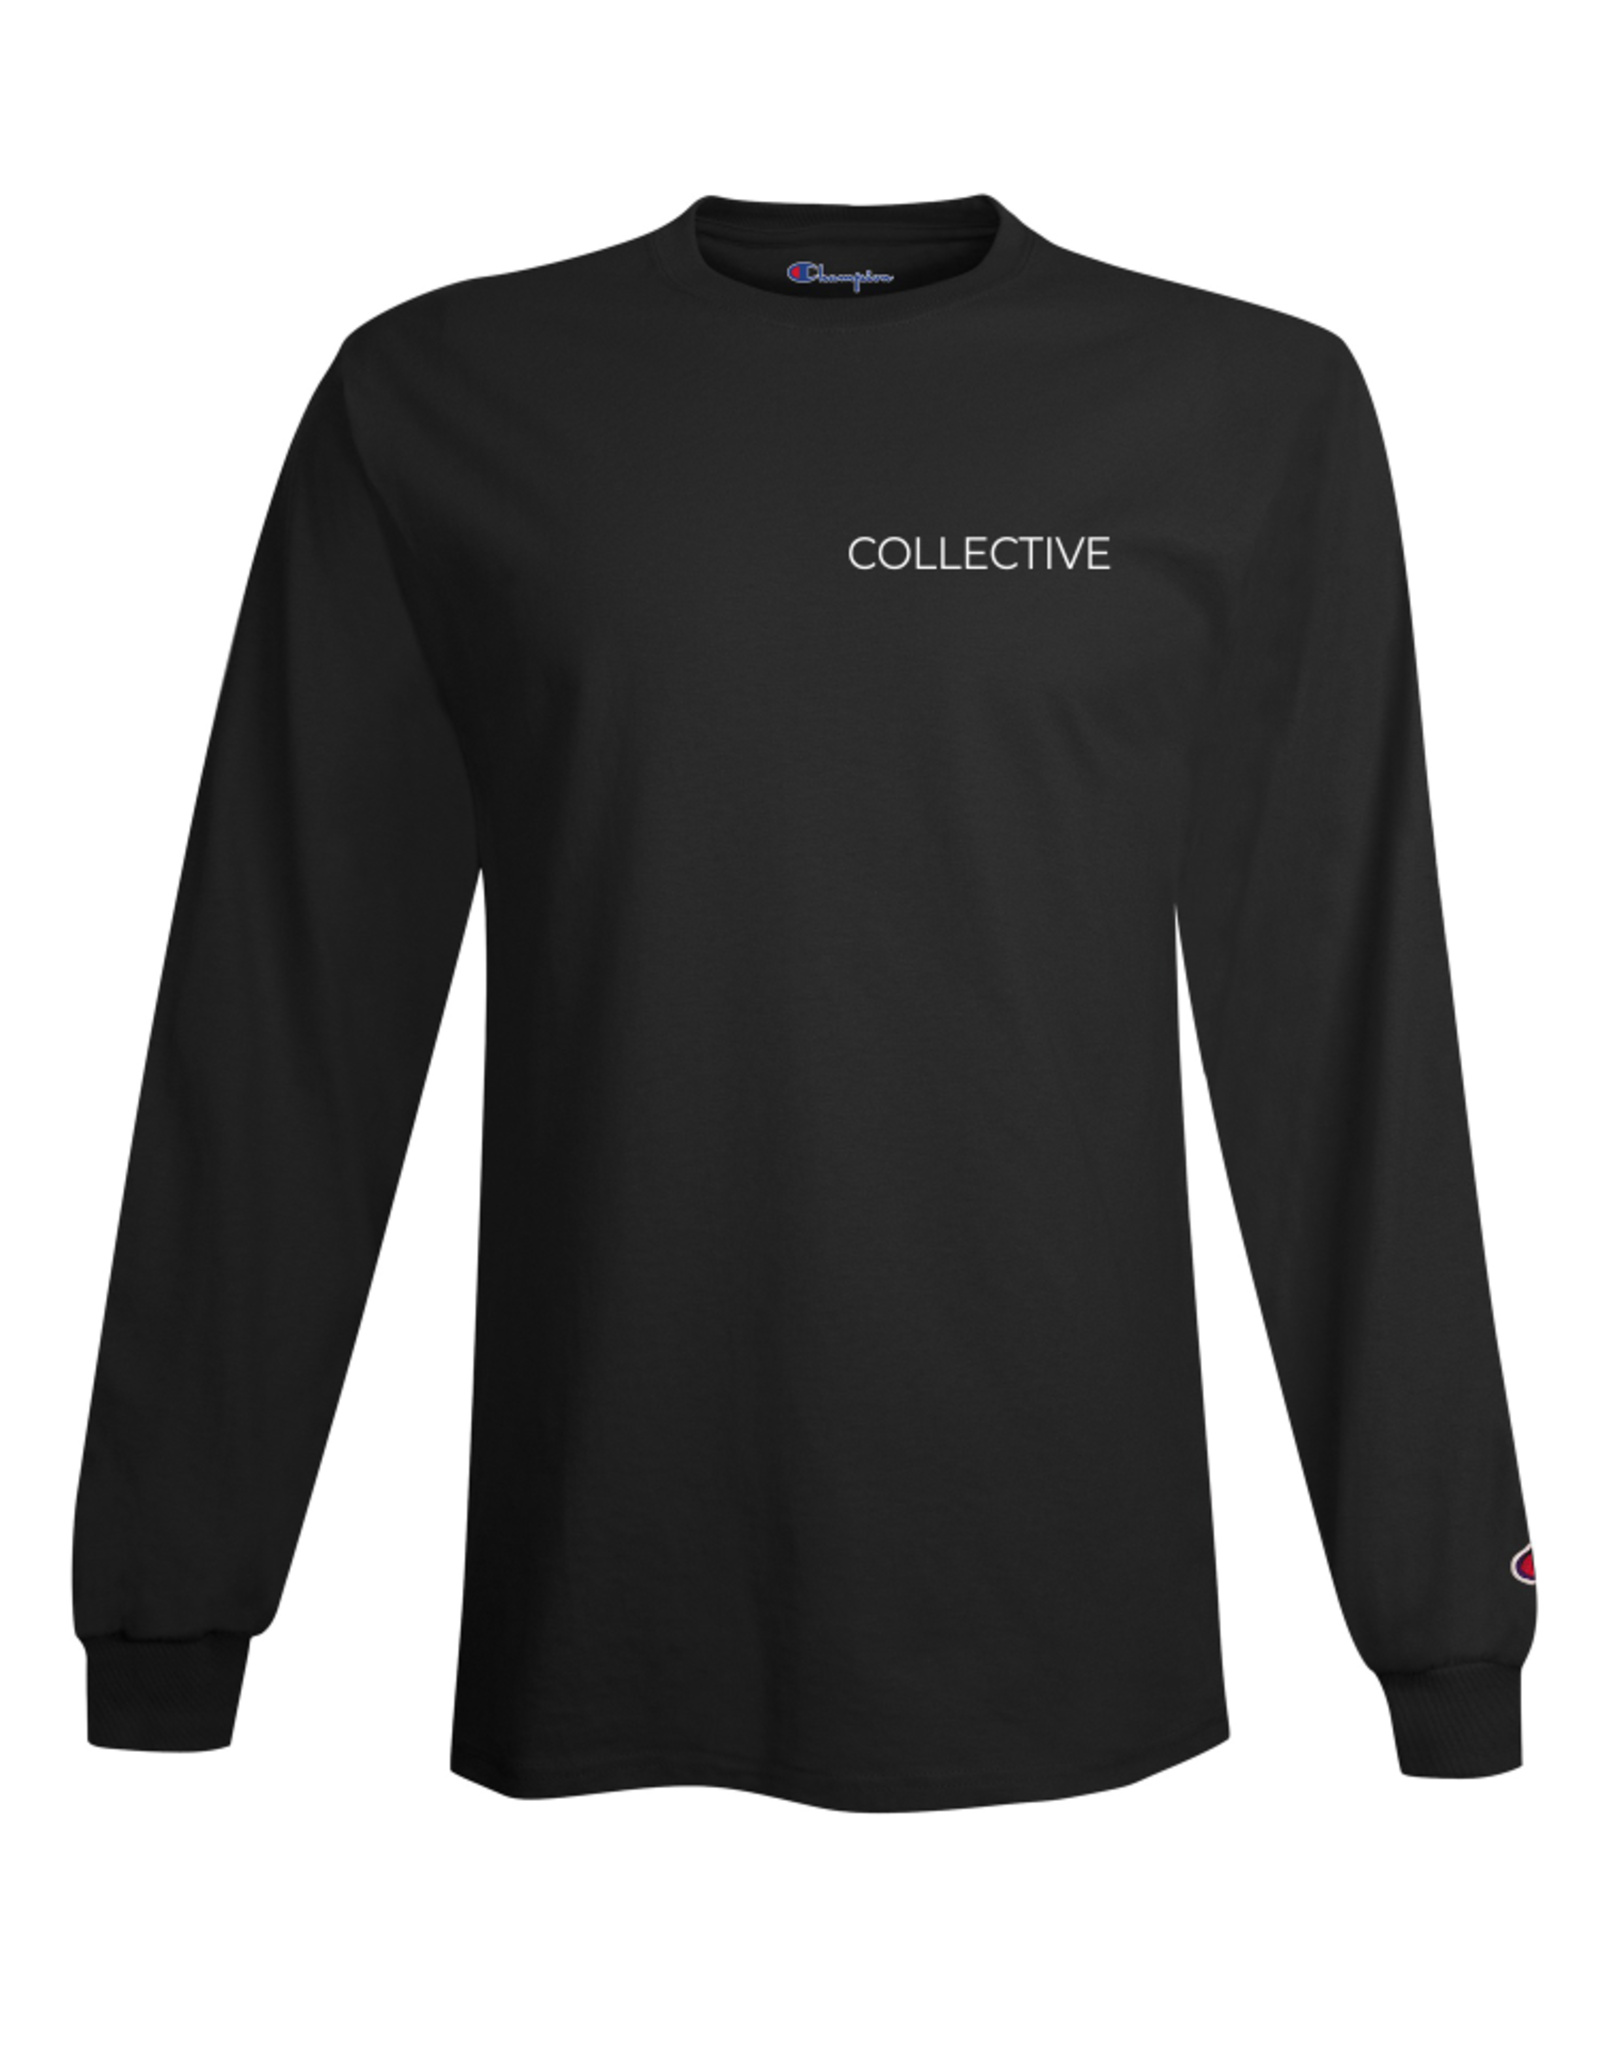 Champion Studio 53 Collective Long Sleeve